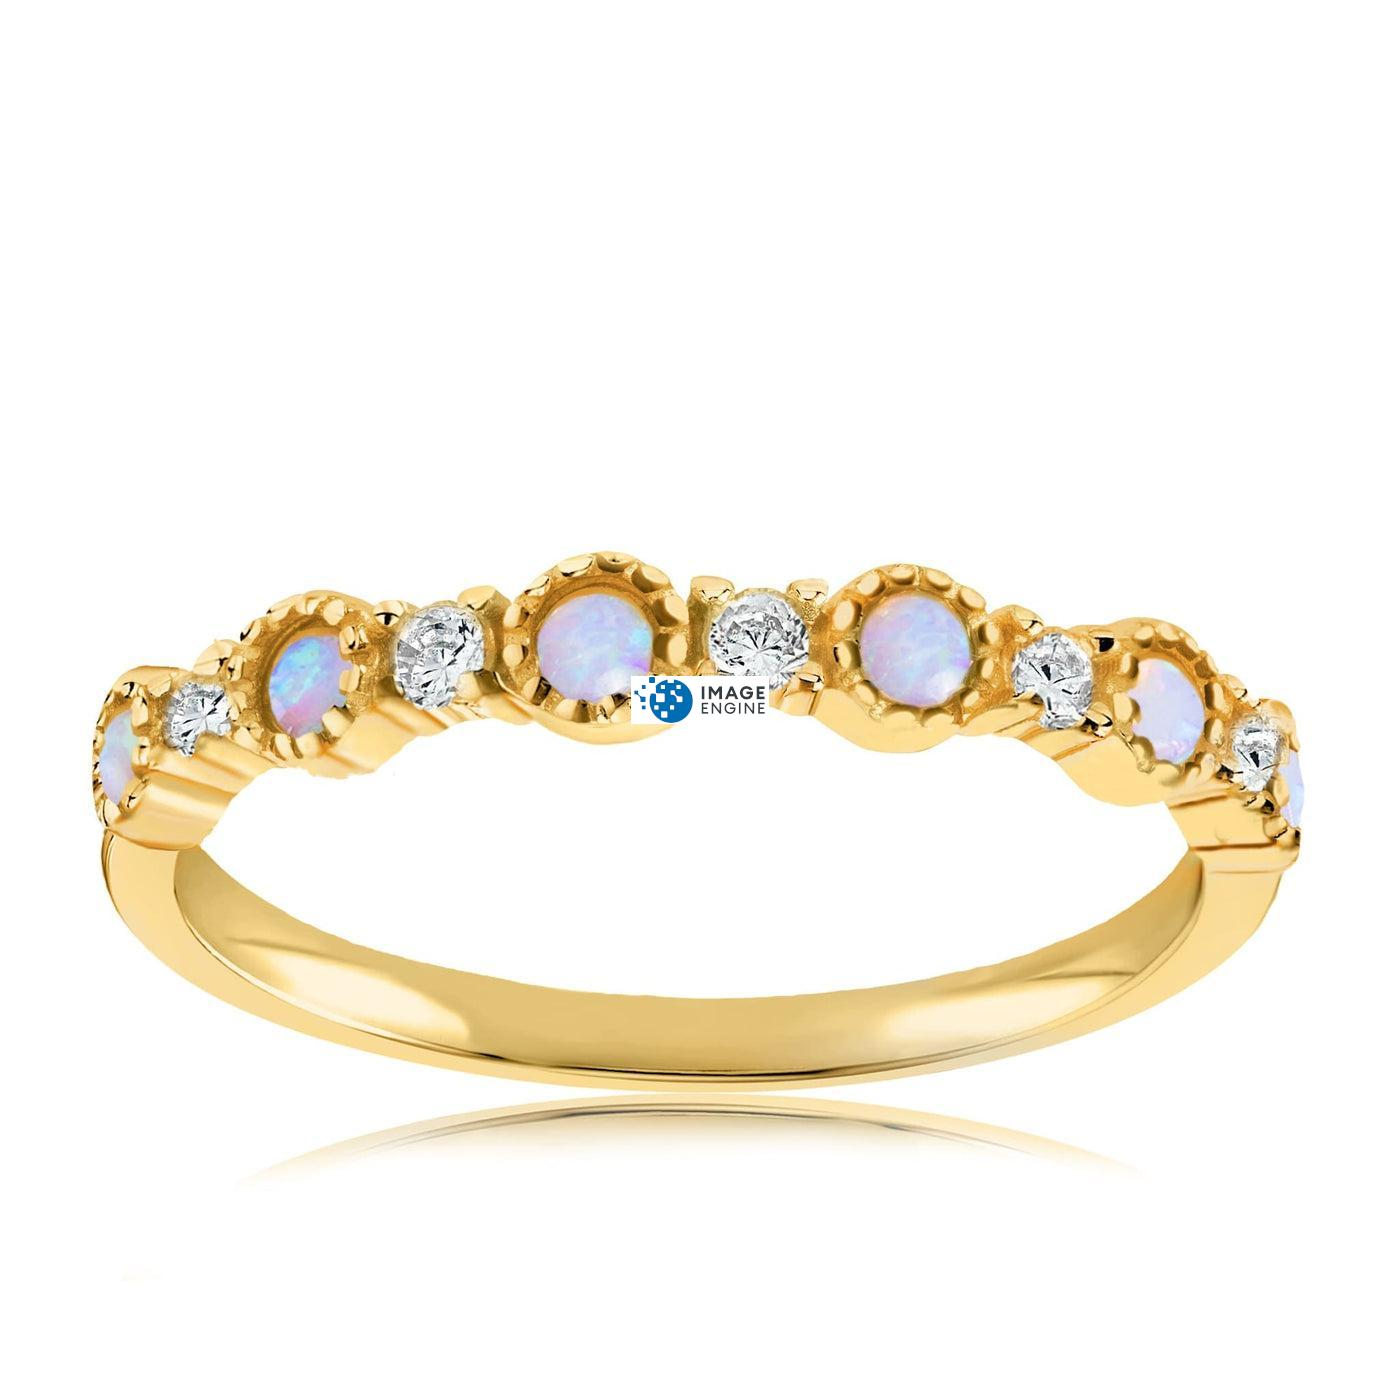 Debra Dots Opal Ring - Front View Facing Up - 18K Yellow Gold Vermeil